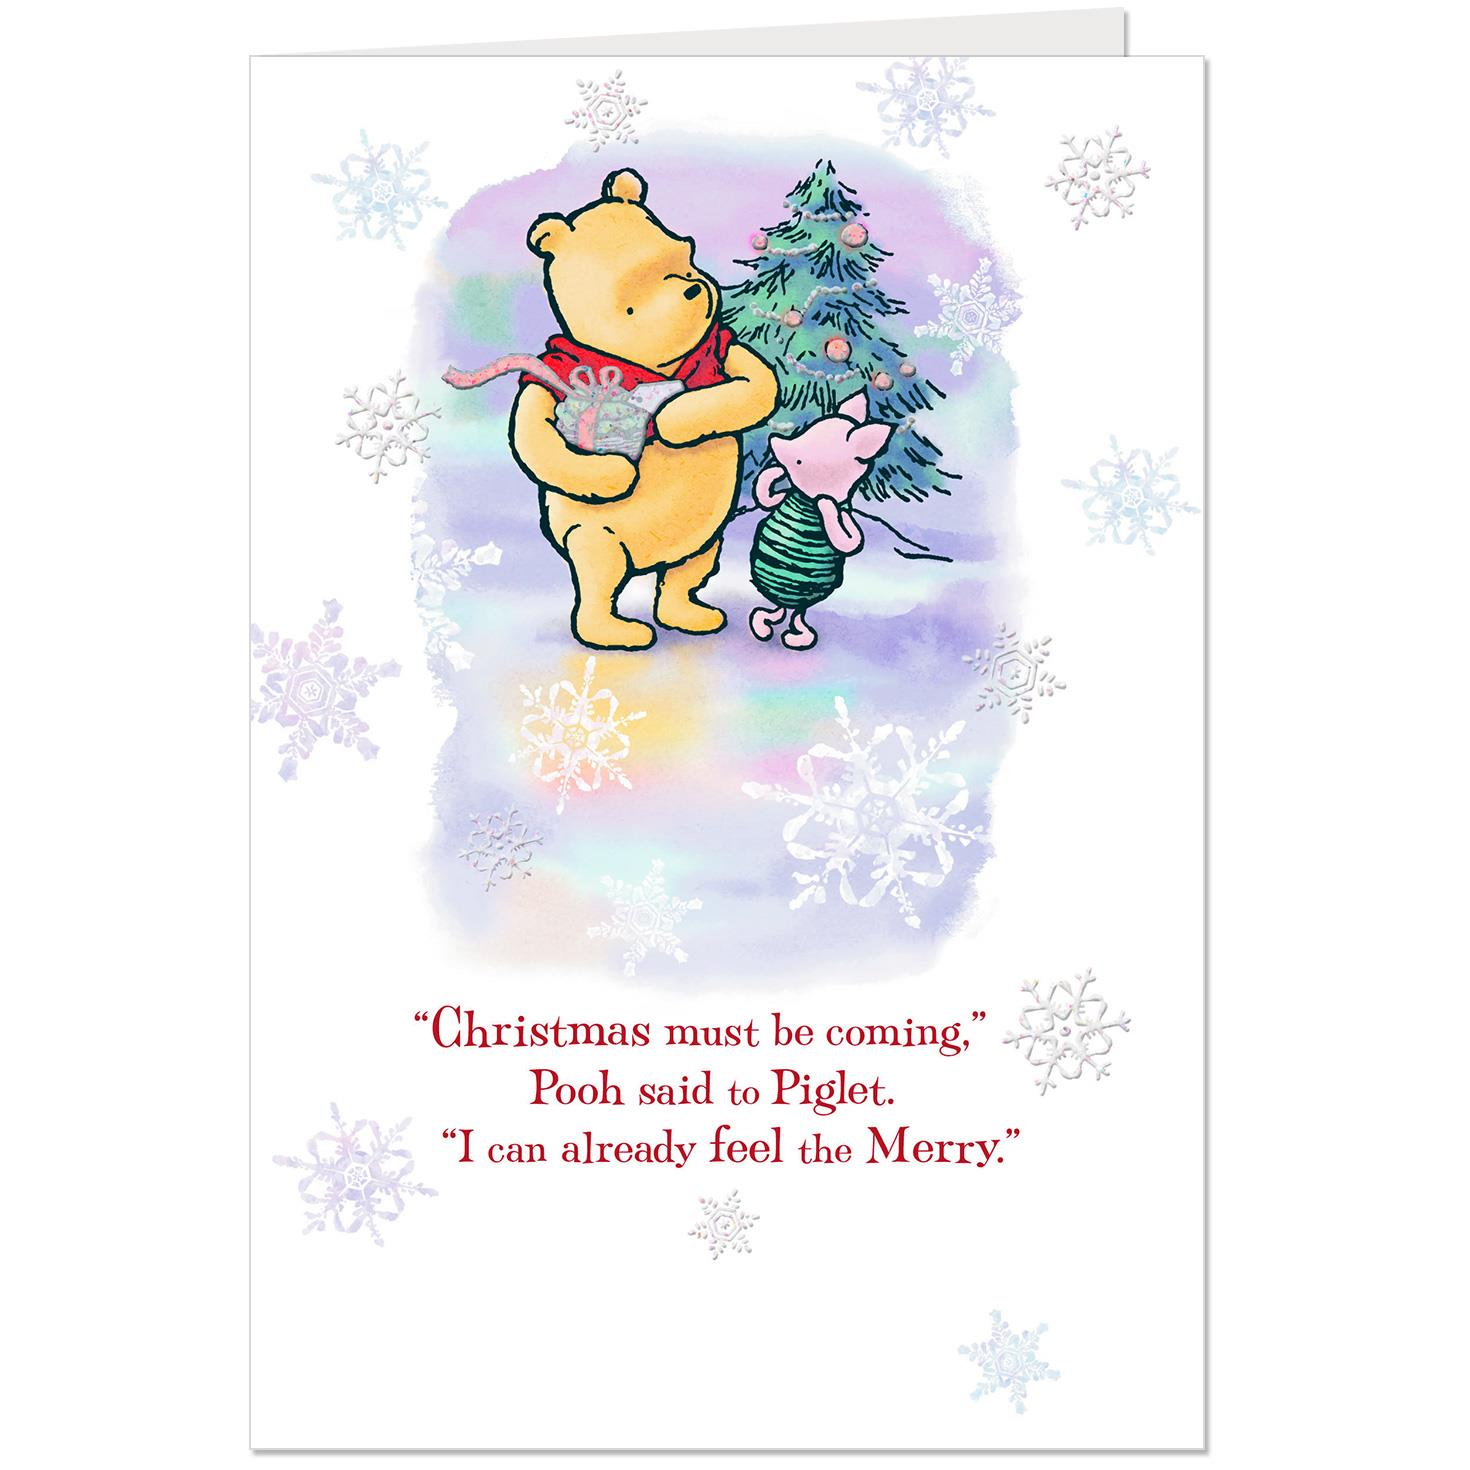 Disney Quotes For Christmas Cards: Disney Winnie The Pooh A Season Of Merry Christmas Card